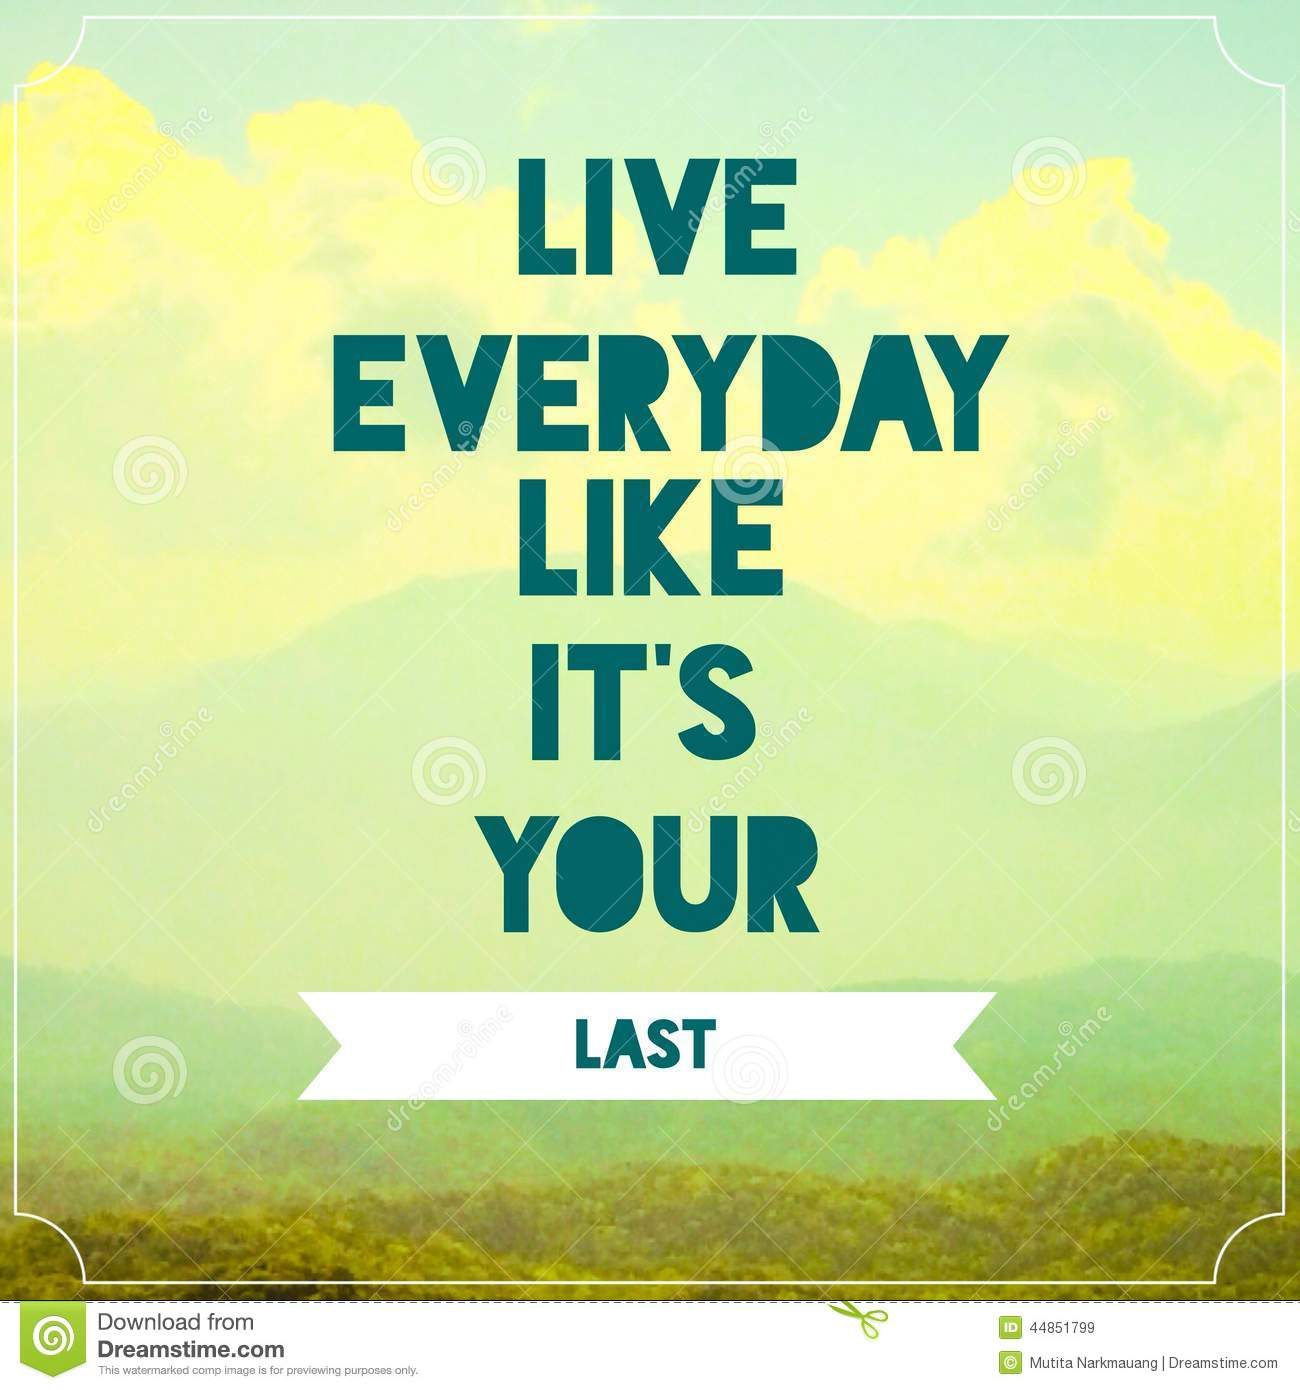 Live Everyday Like Its Your Last Inspirational Quotation